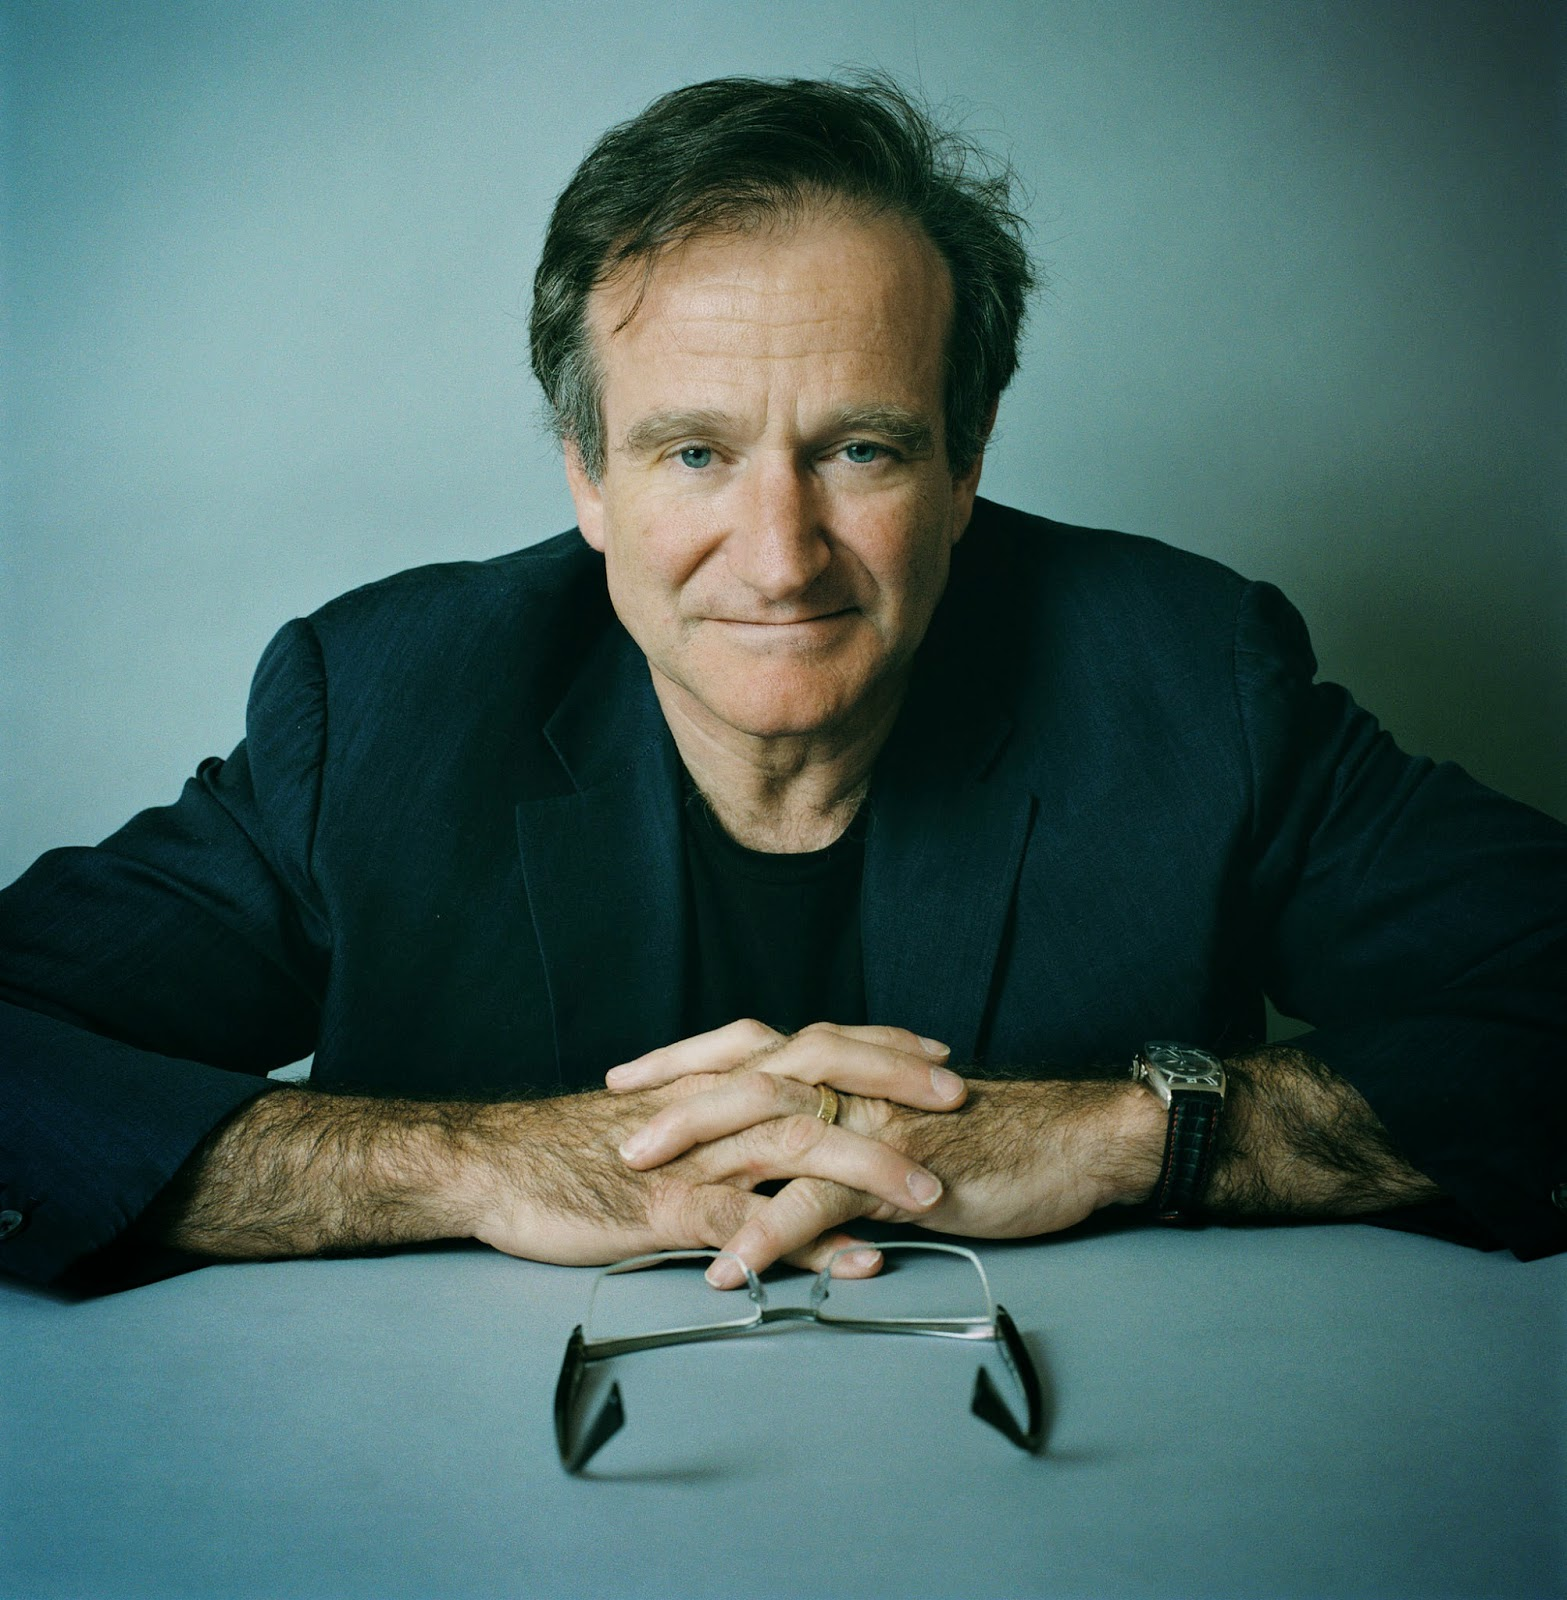 Robin Williams Quotes About Life Savage Cinema O Captain My Captain Remembering Robin Williams